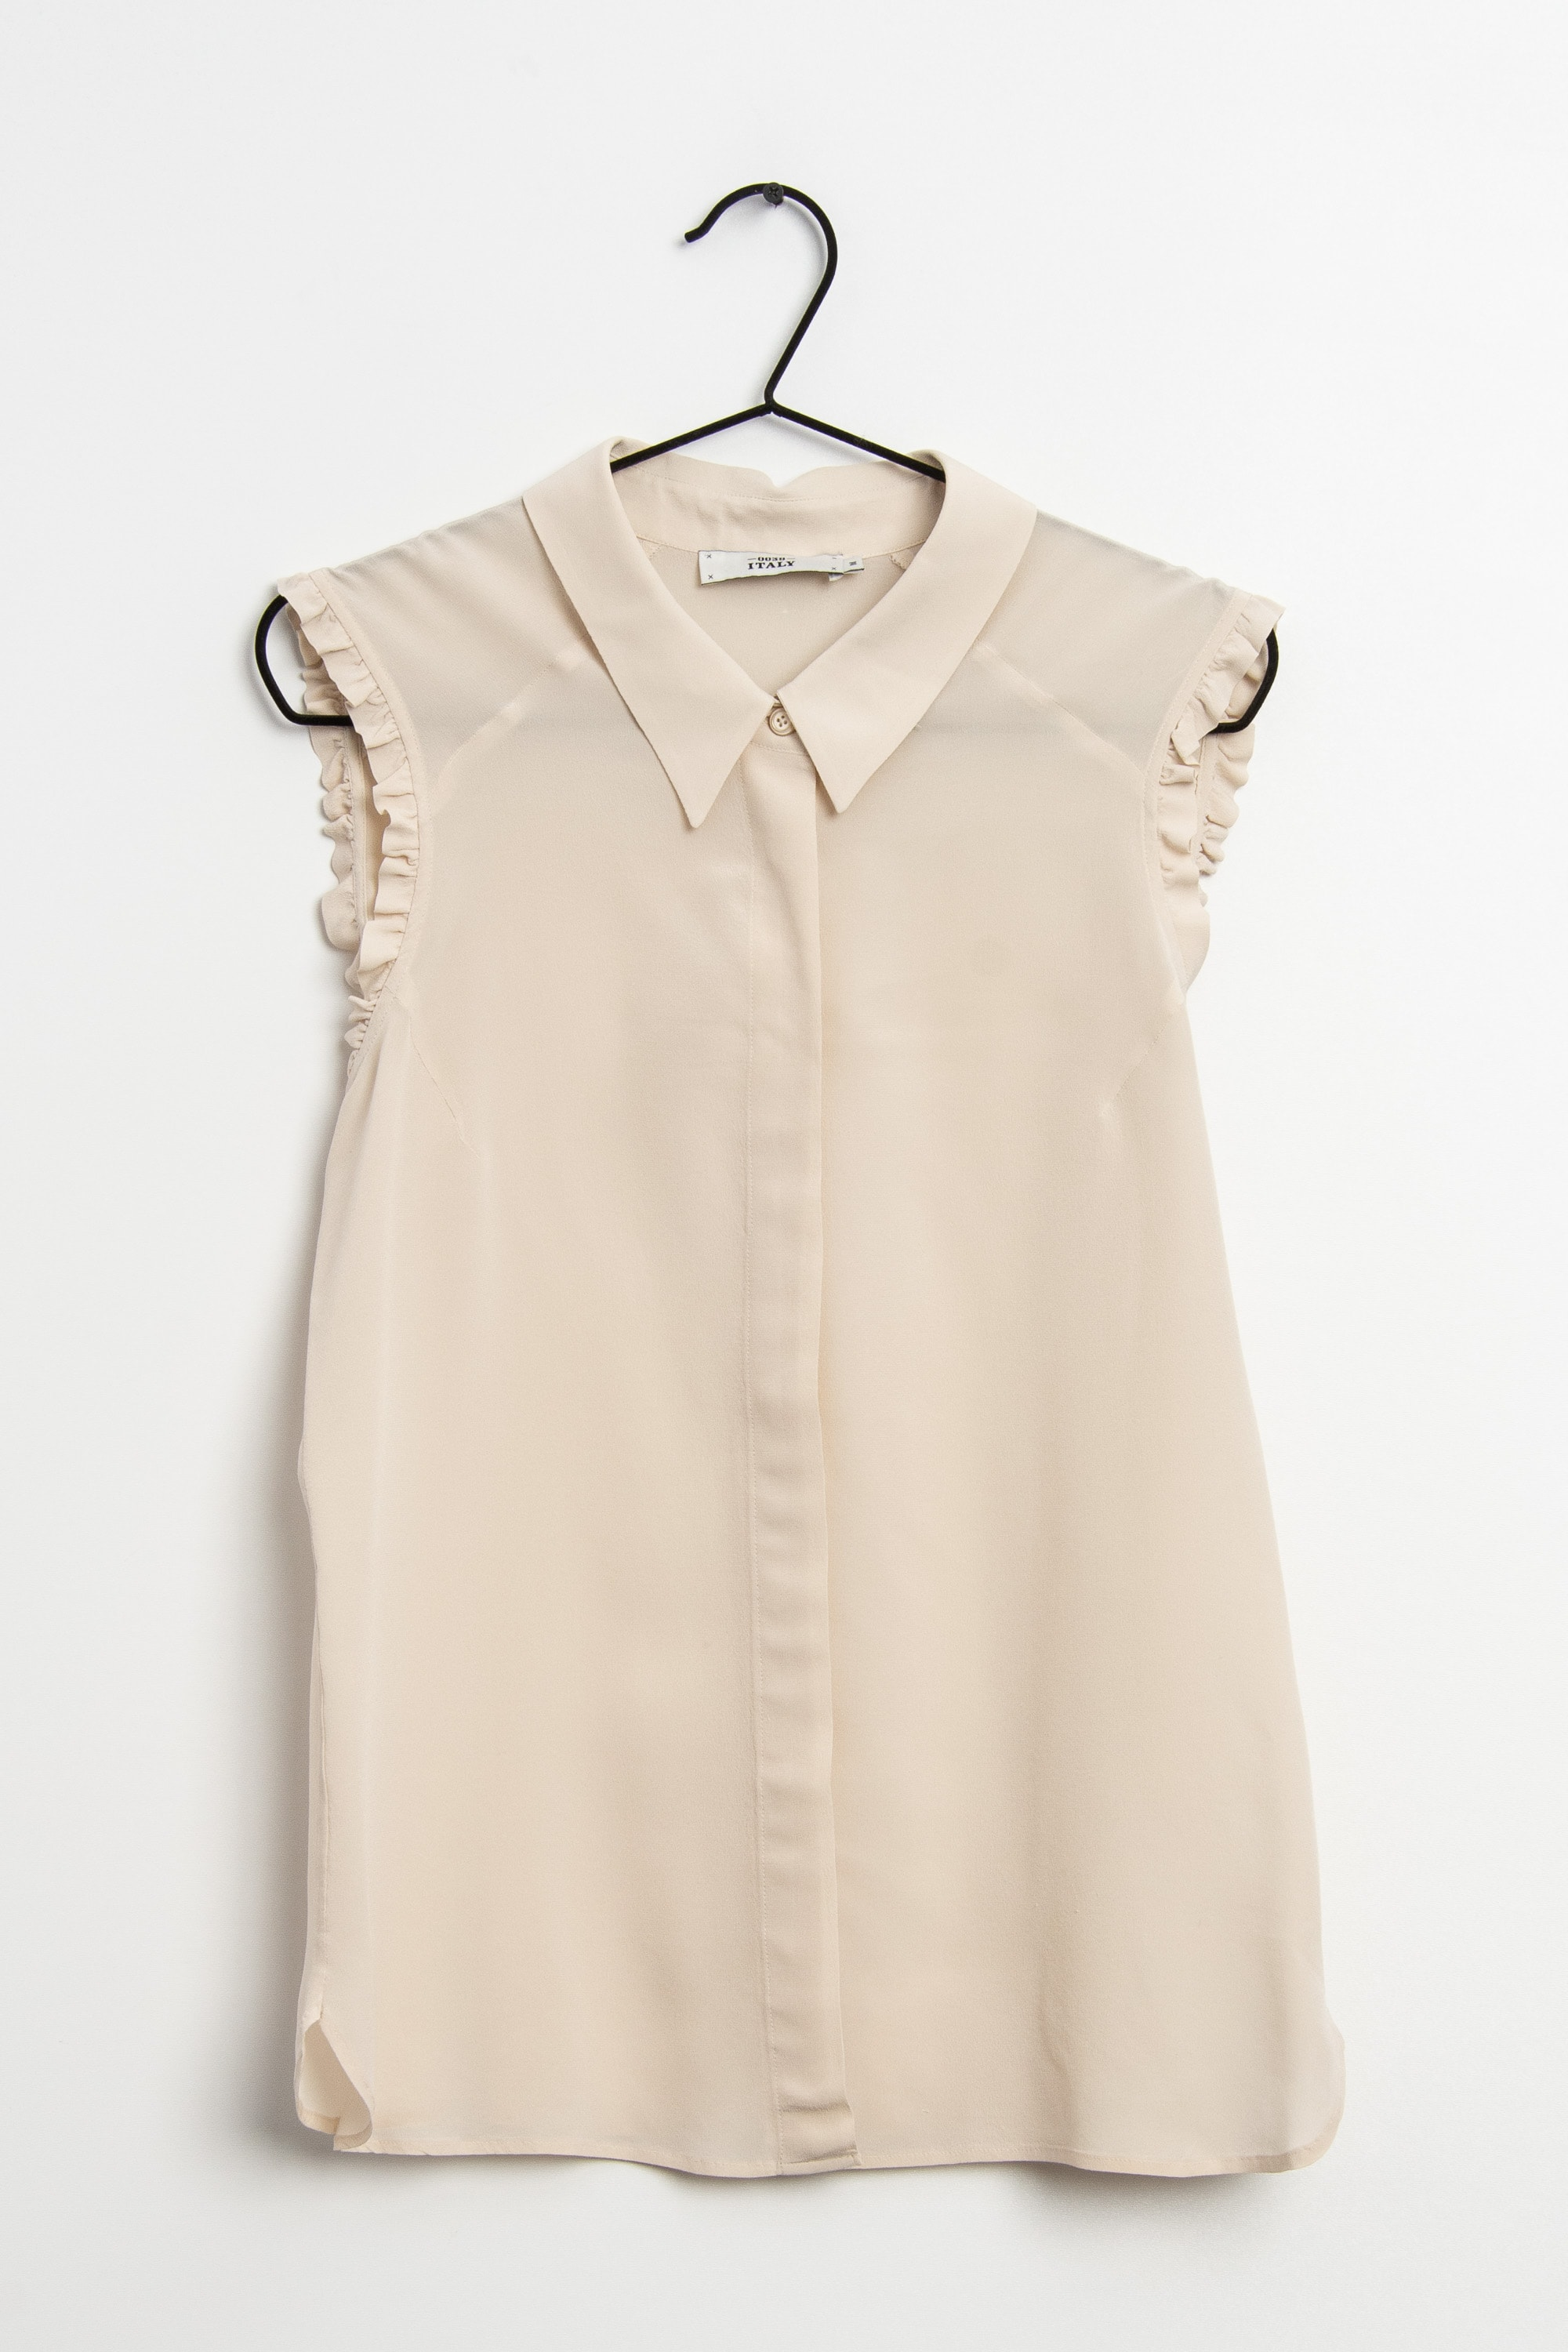 0039 Italy Bluse Beige Gr.M